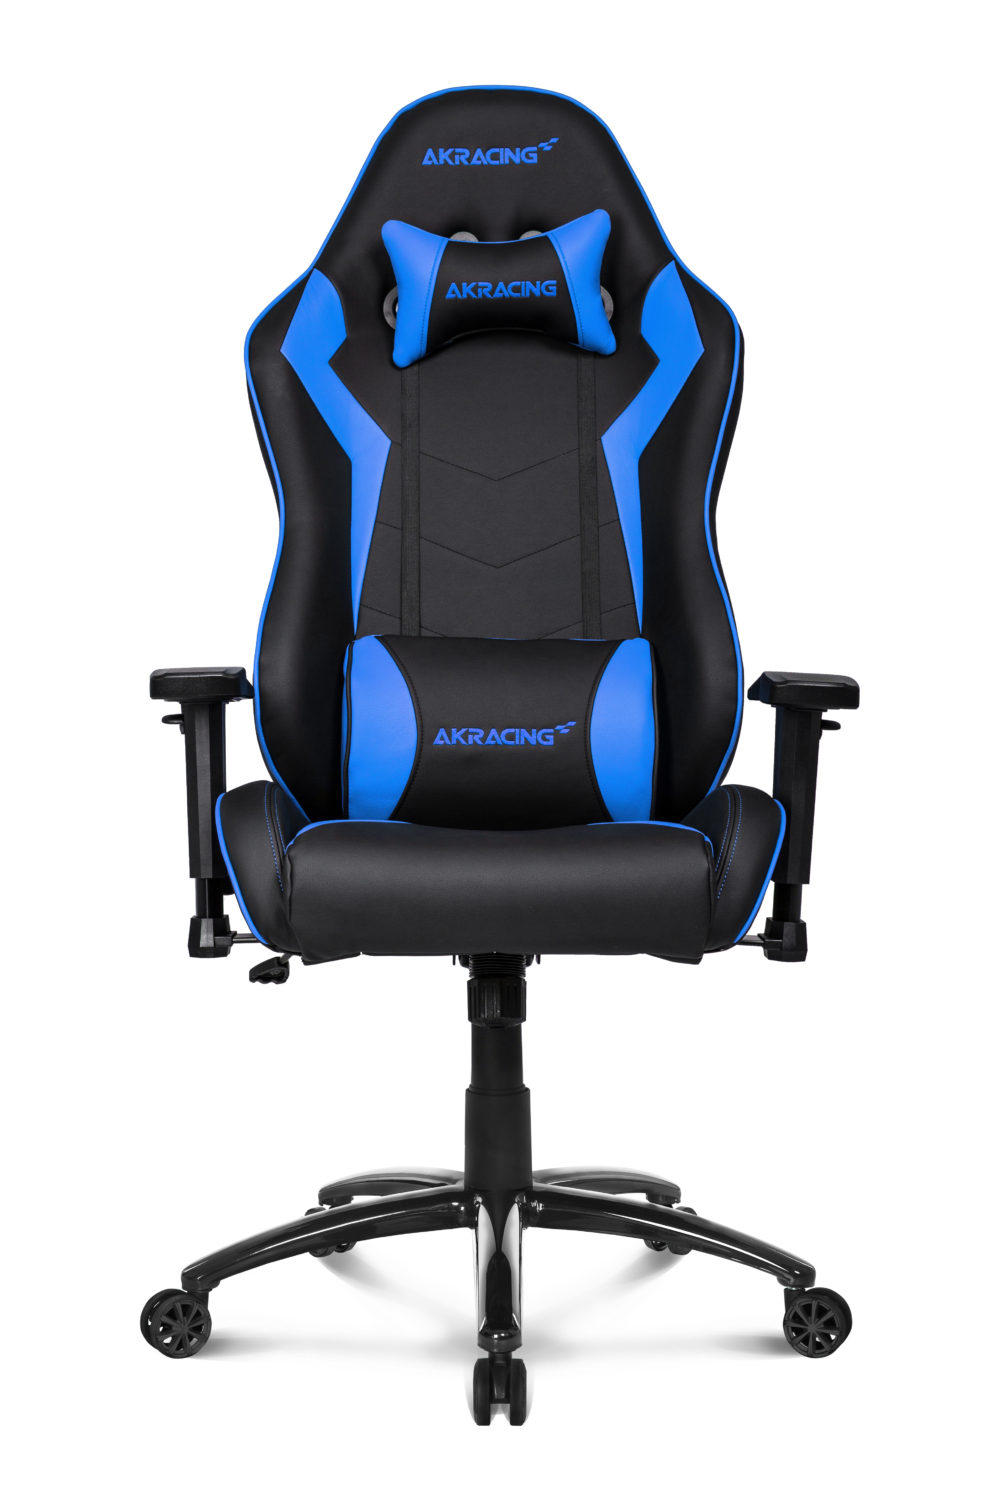 AKRacing Core SX gamestoel blauw